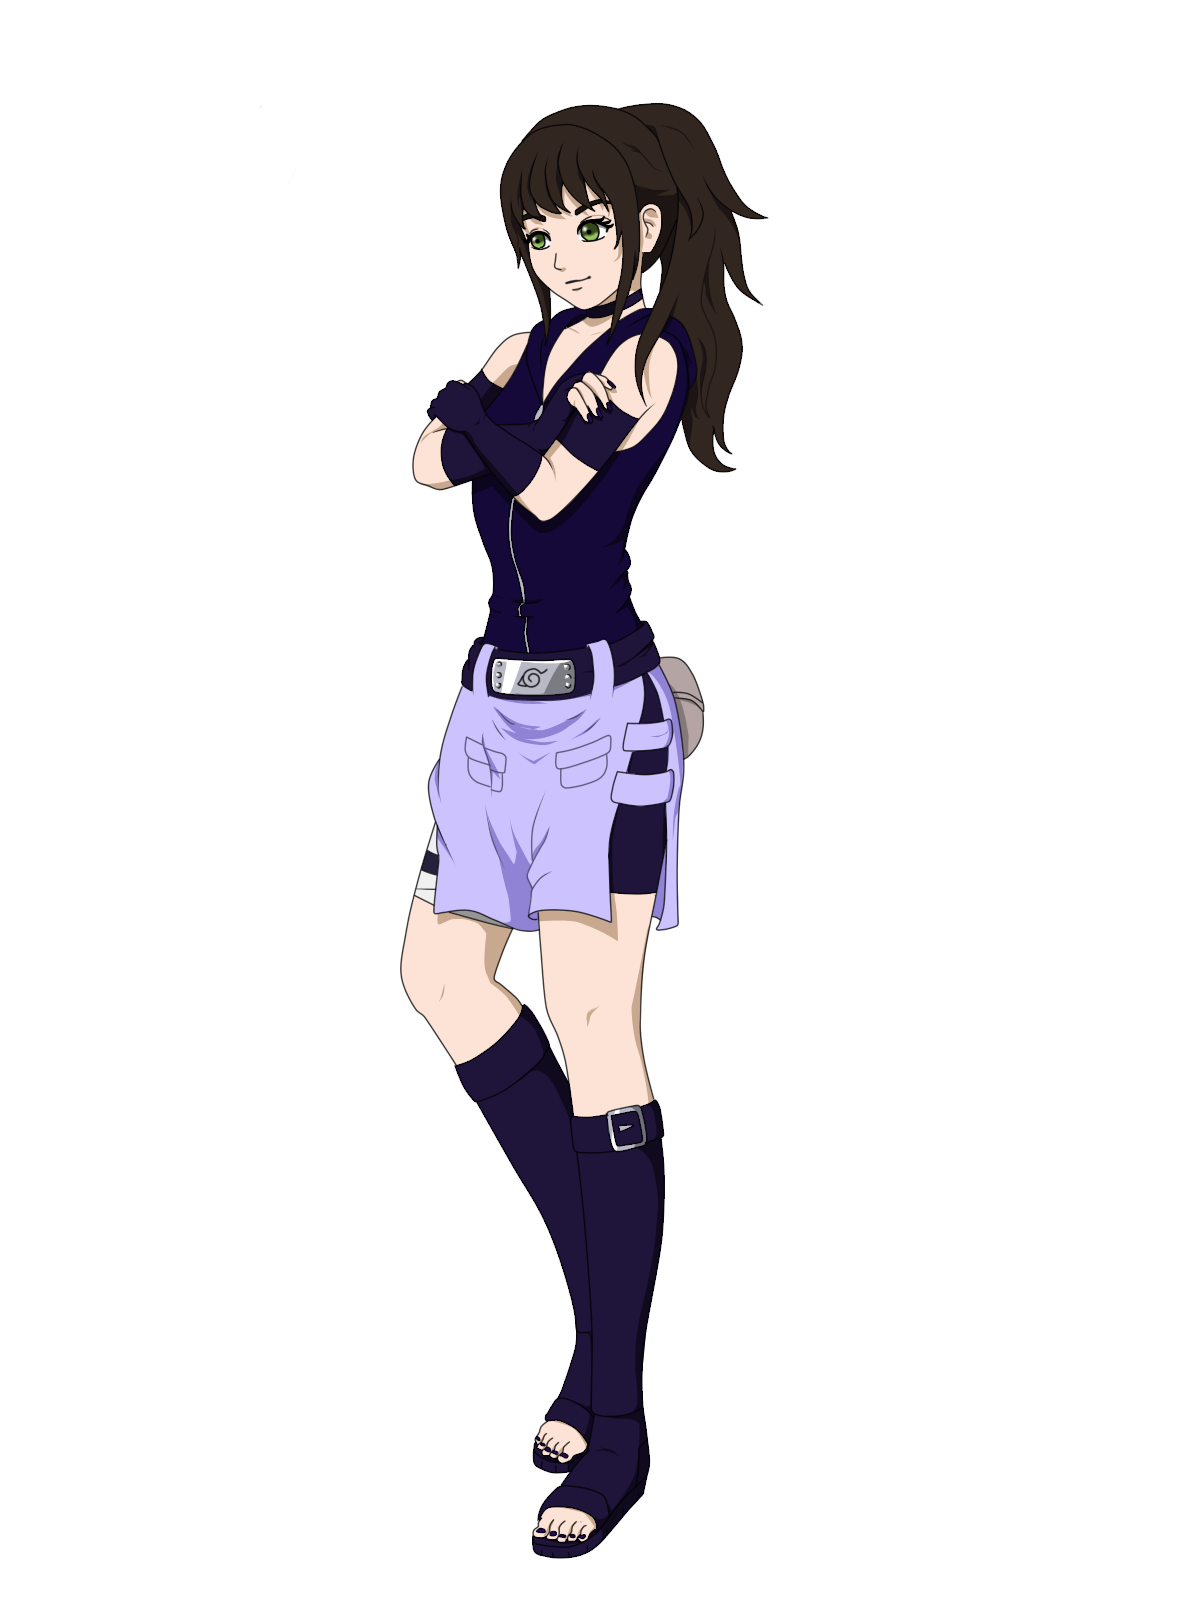 amiko_shippuden_outfit_by_darkjulia3000d4jxyup.png (1200